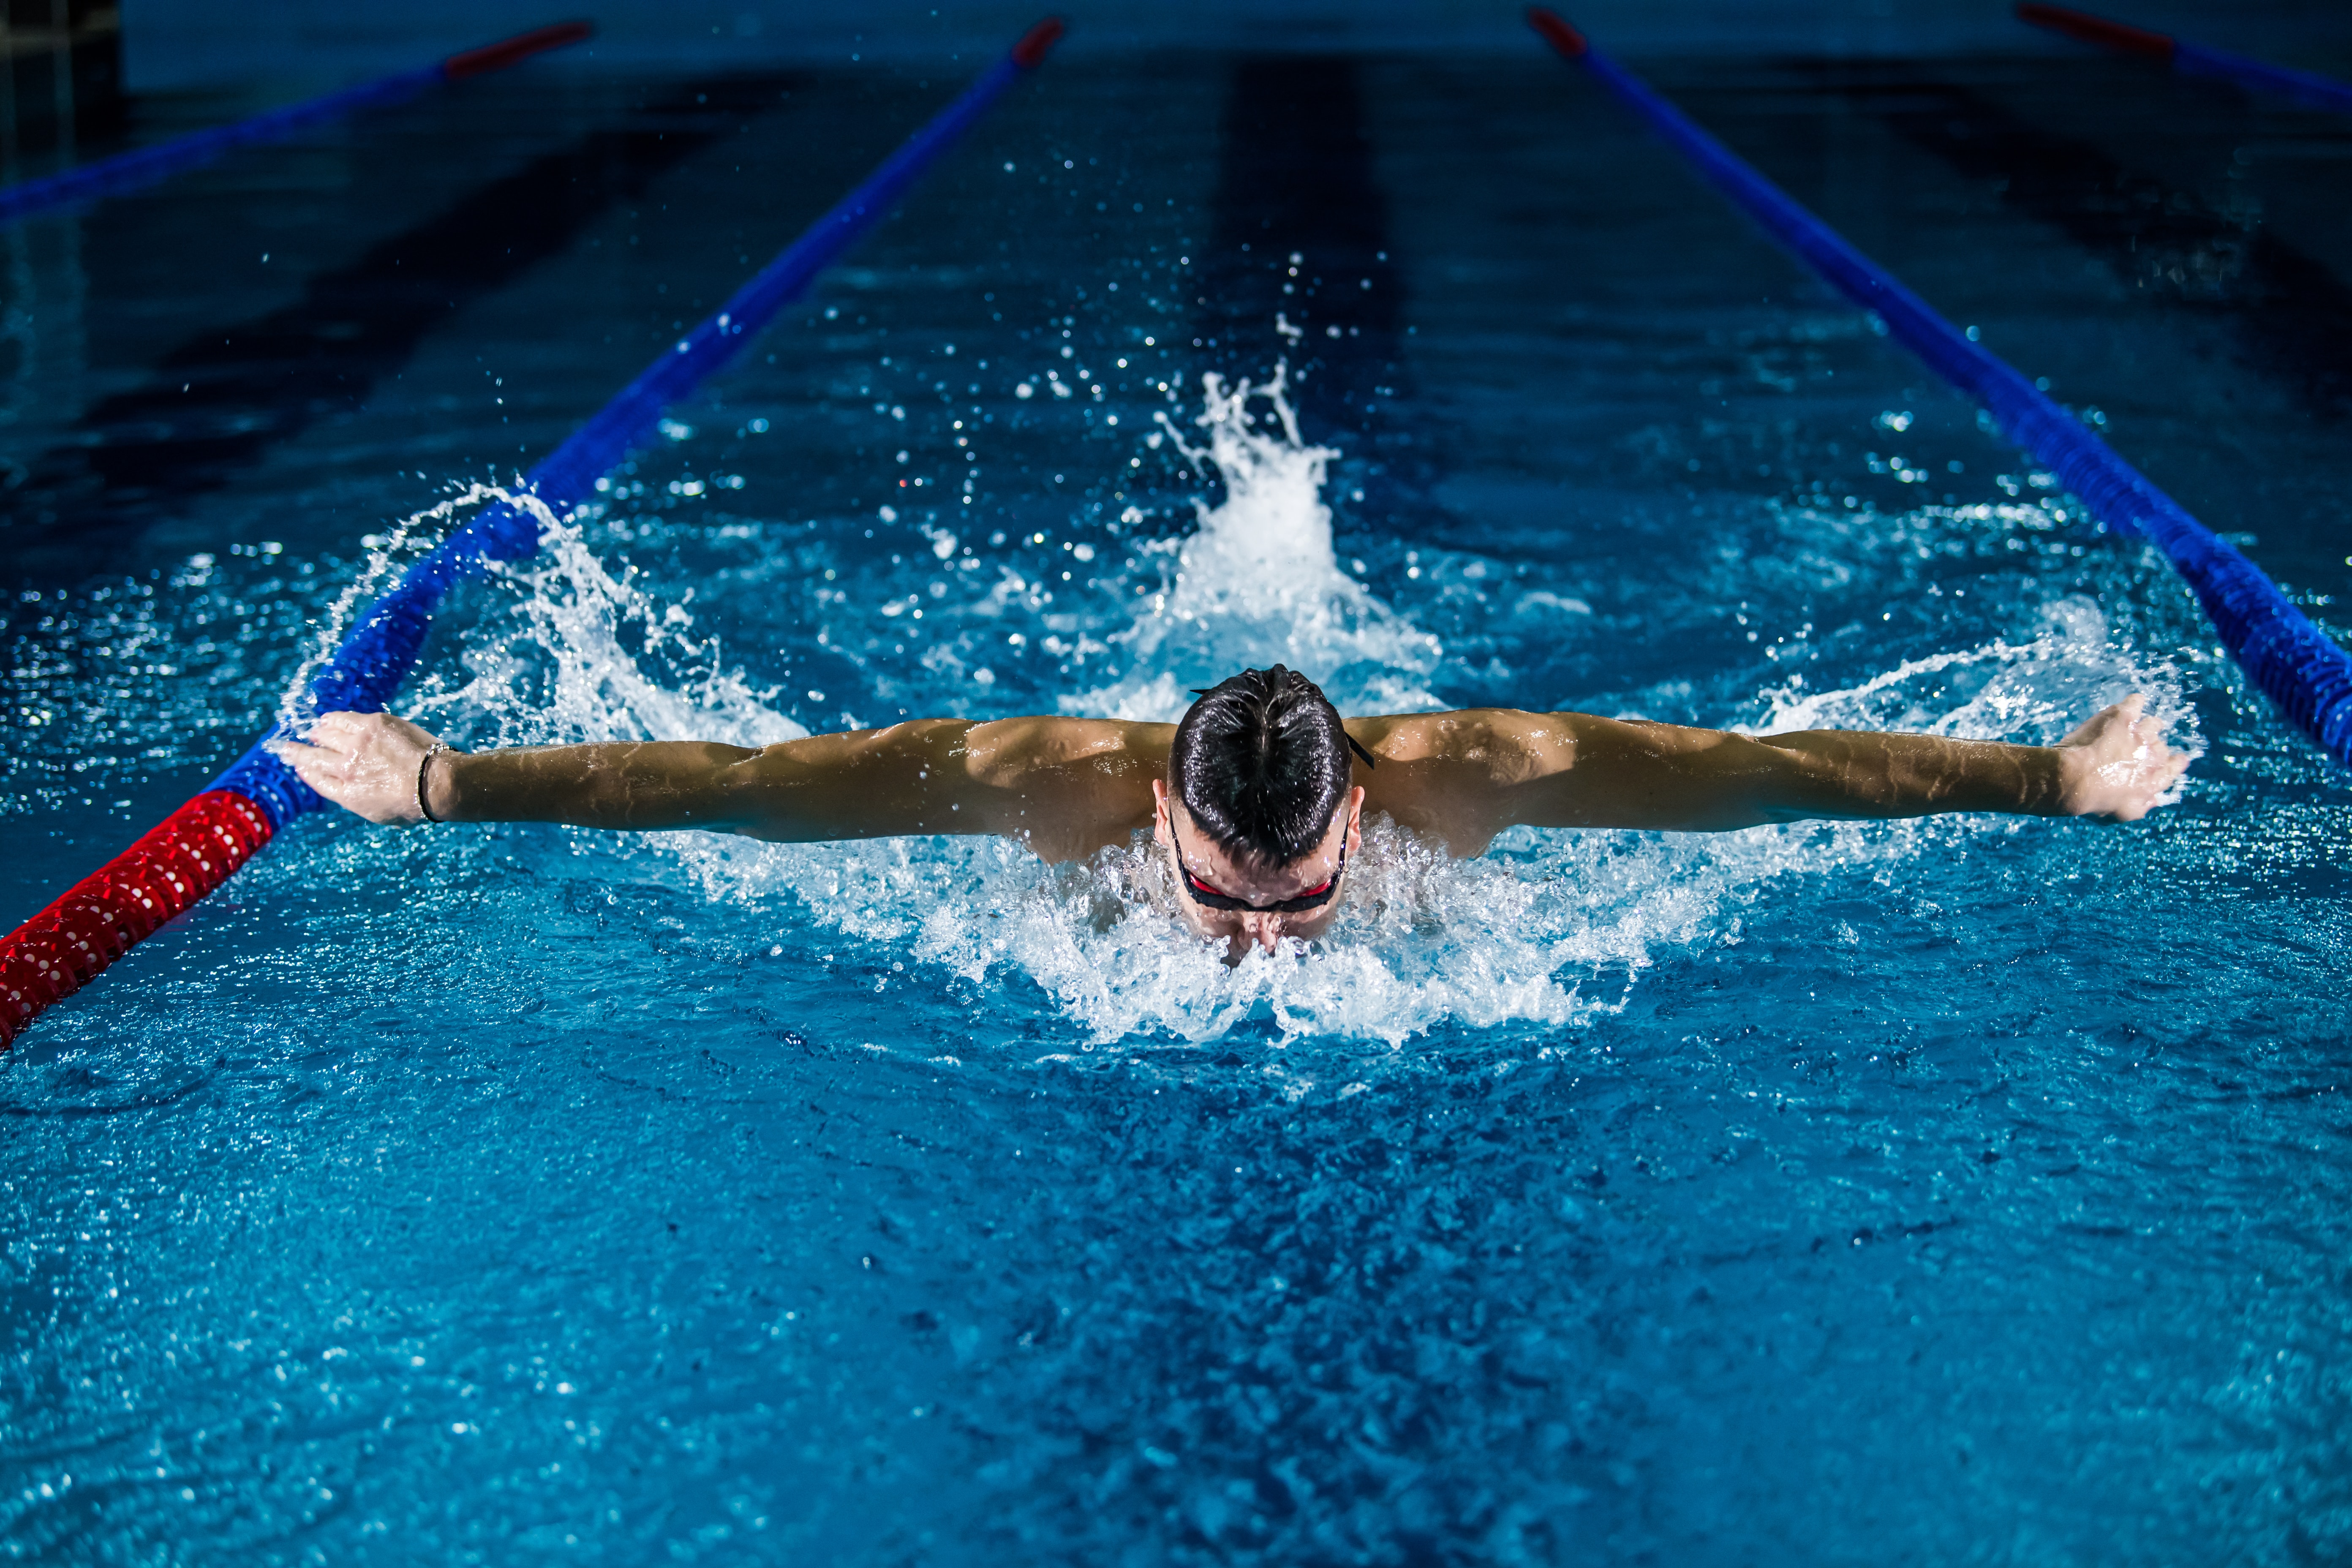 a professional swimmer doing butterfly stroke